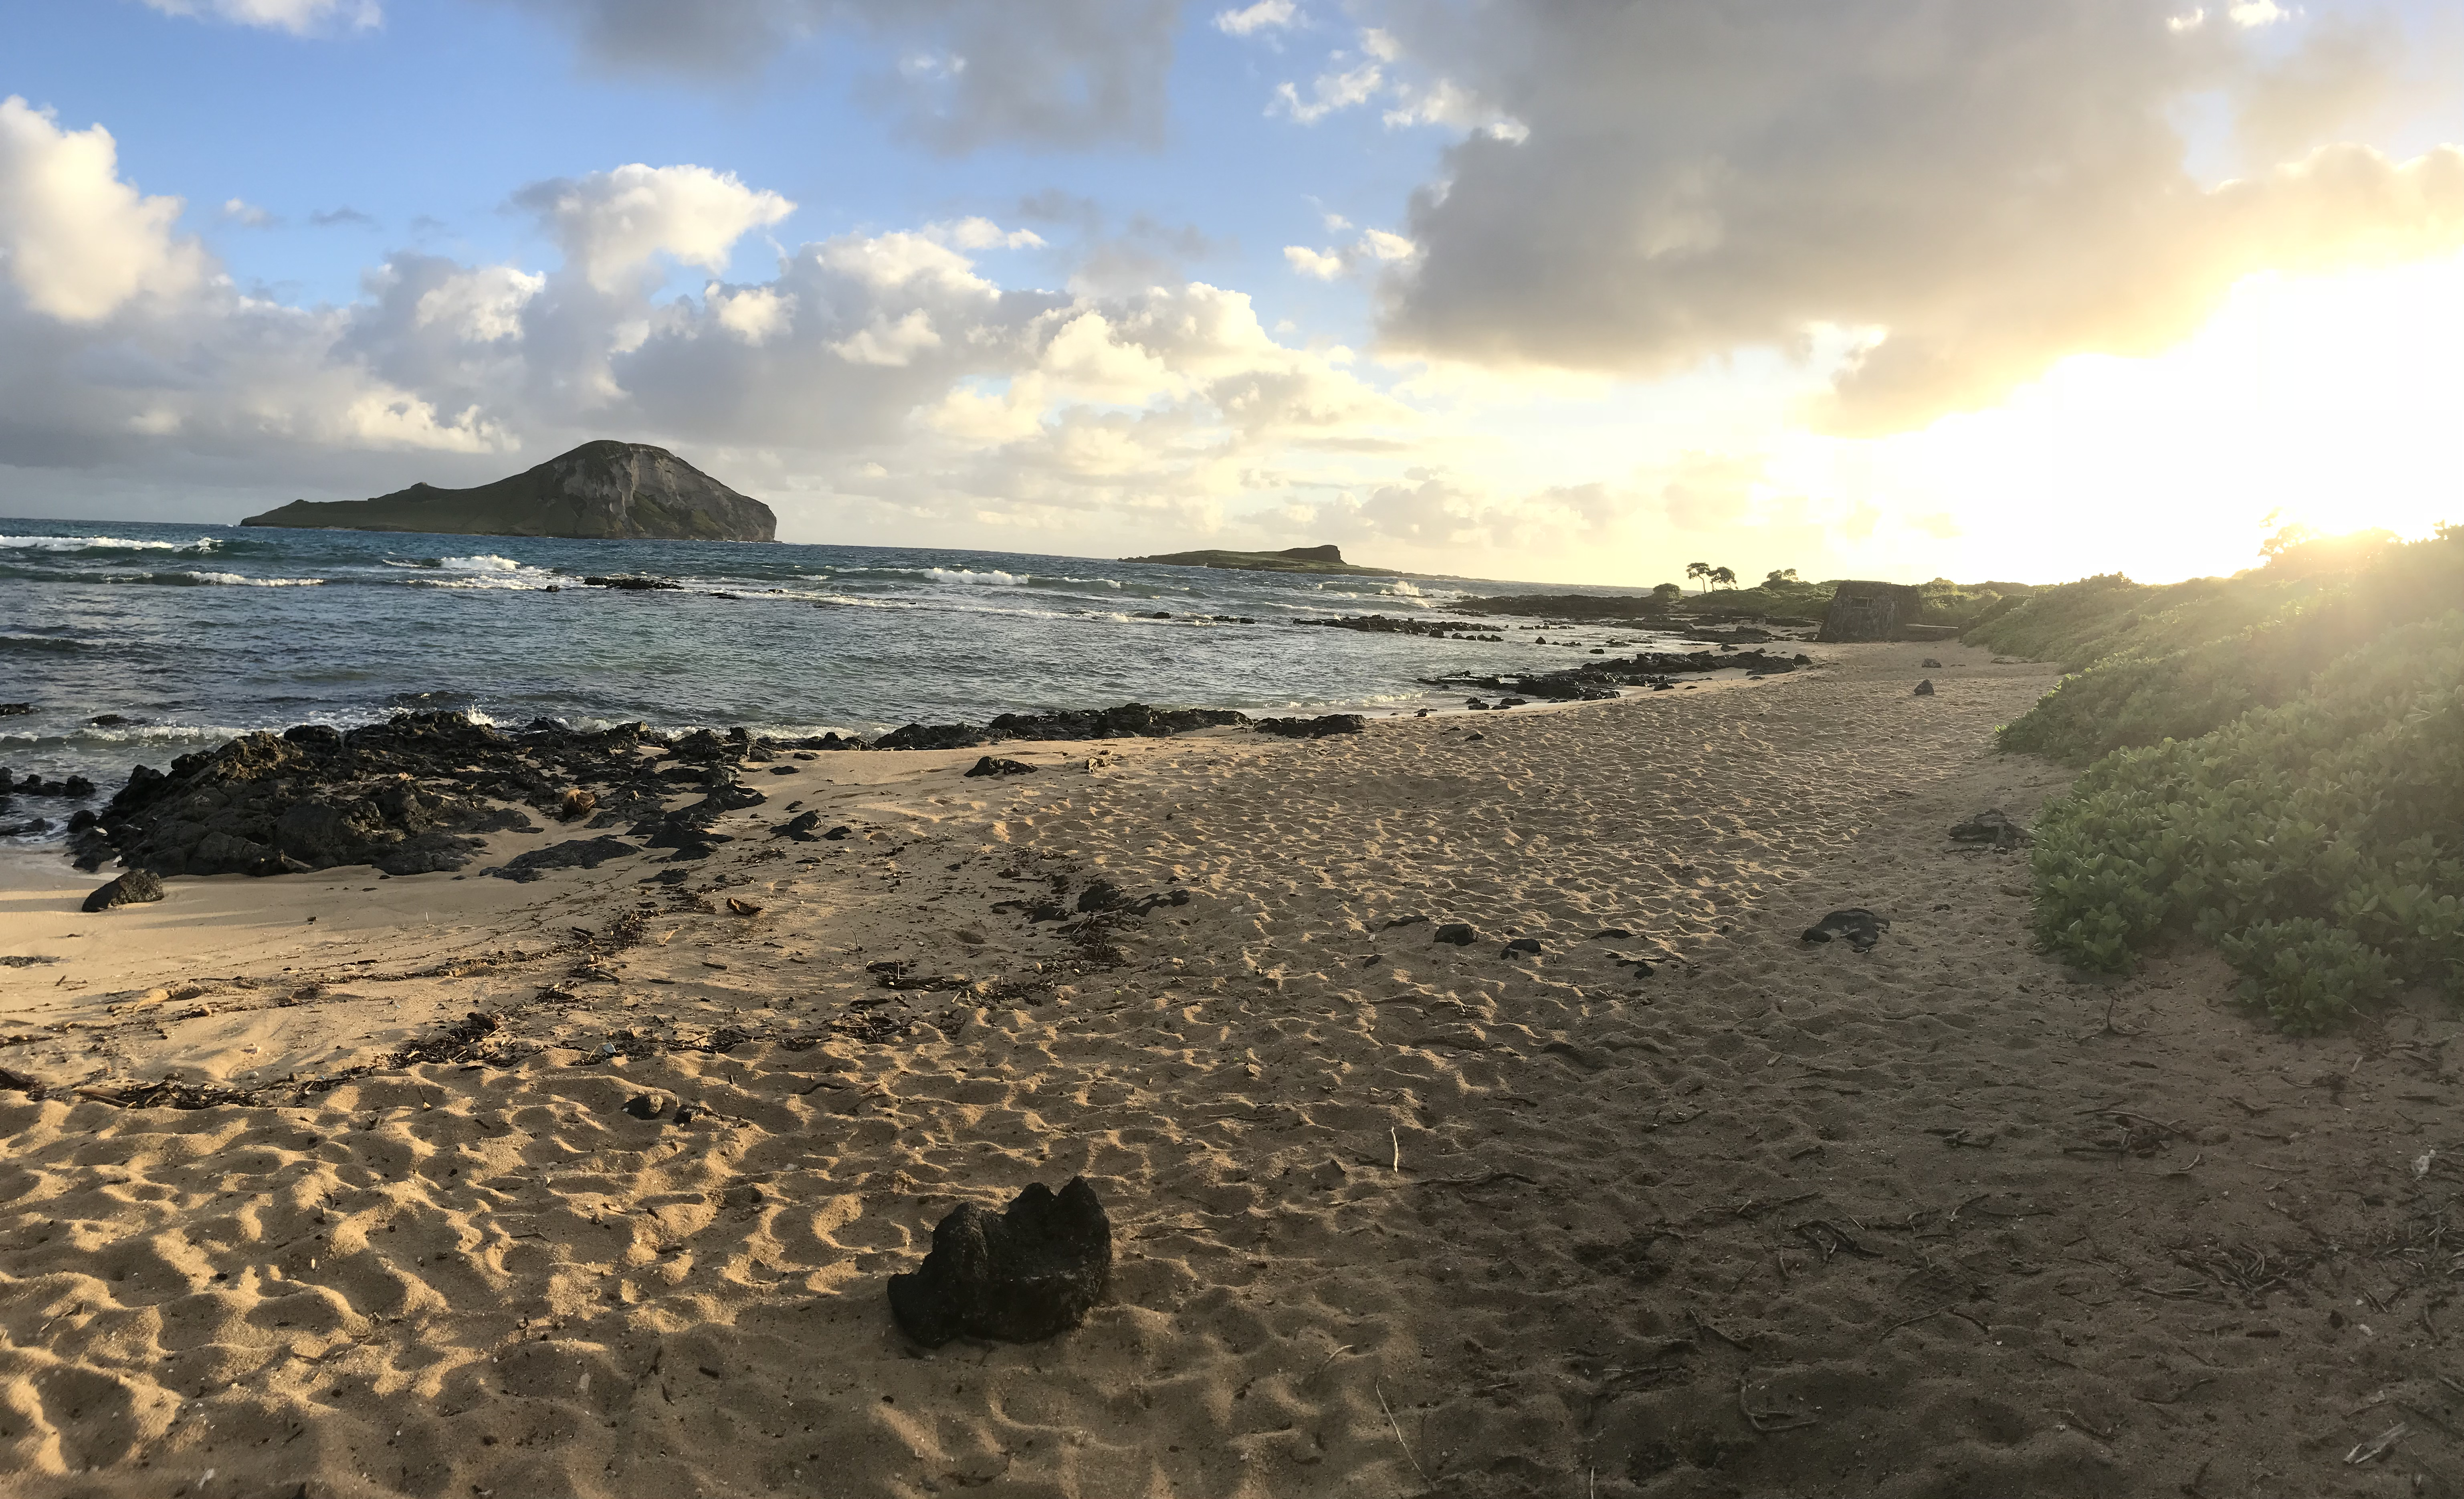 Baby Makapuu Tidepools with the sun rising, taken before the beach clean up started